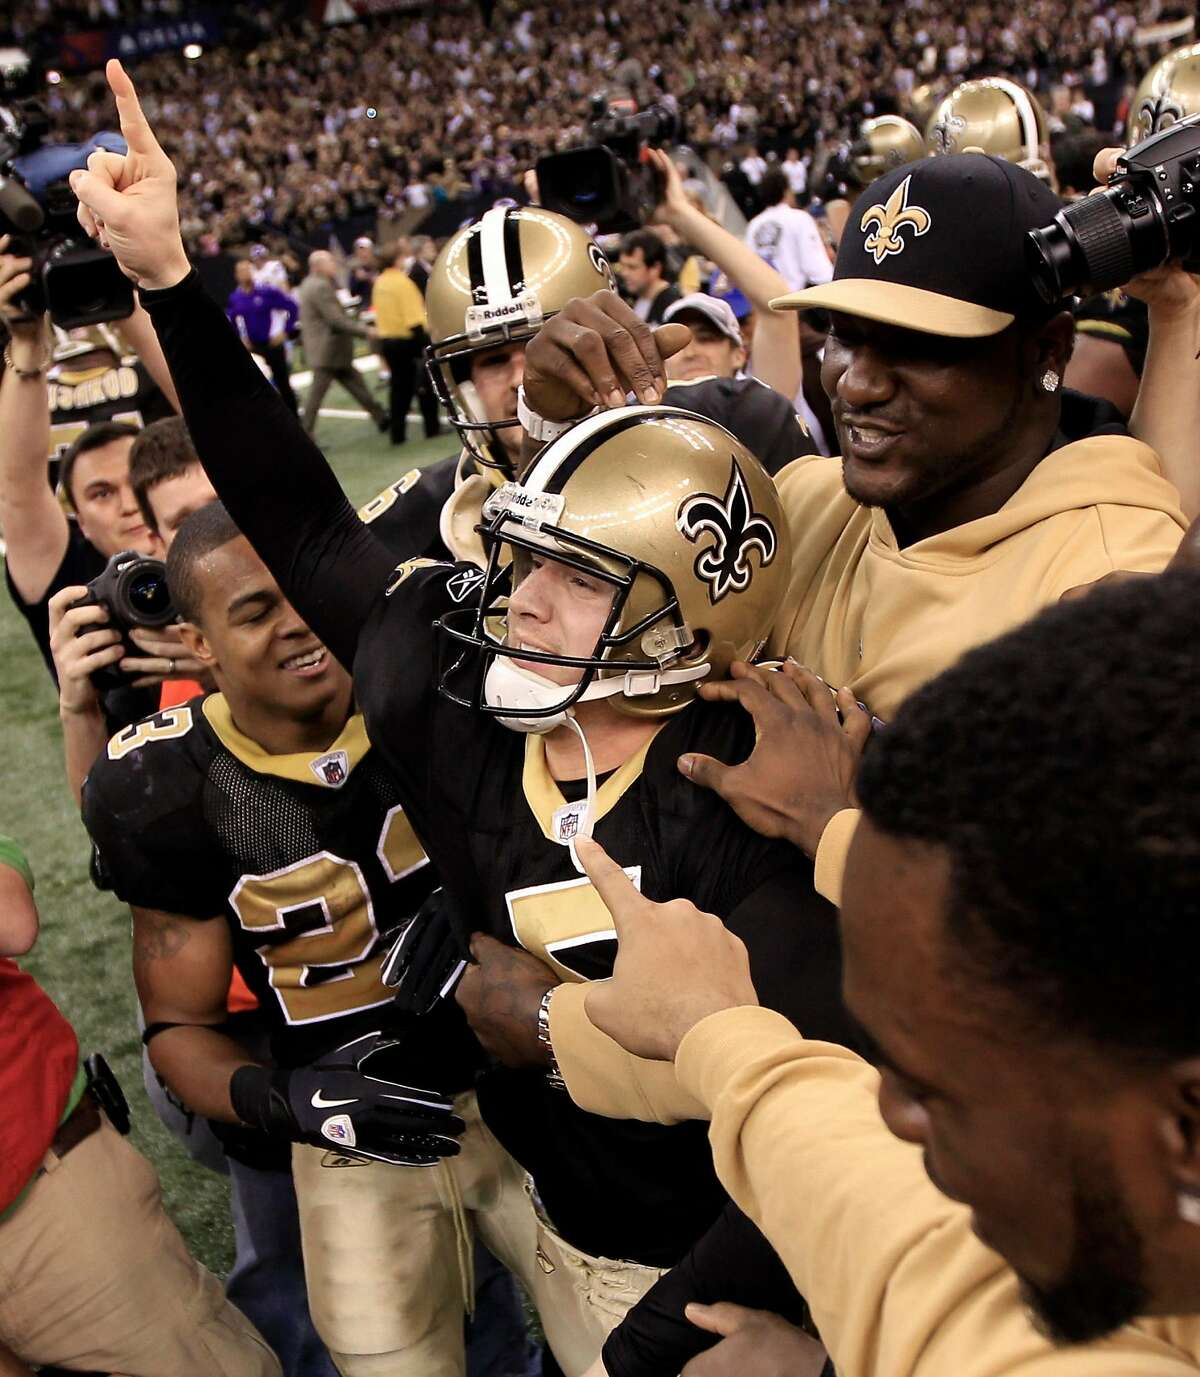 New Orleans Saints kicker Garrett Hartley celebrates after kicking the game winning field goal during overtime in the NFC Championship NFL football game in New Orleans, Sunday, Jan. 24, 2010. The Saints defeated the Vikings 31-28 to advance to the Super Bowl against the Indianapolis Colts. (AP Photo/David J. Phillip)